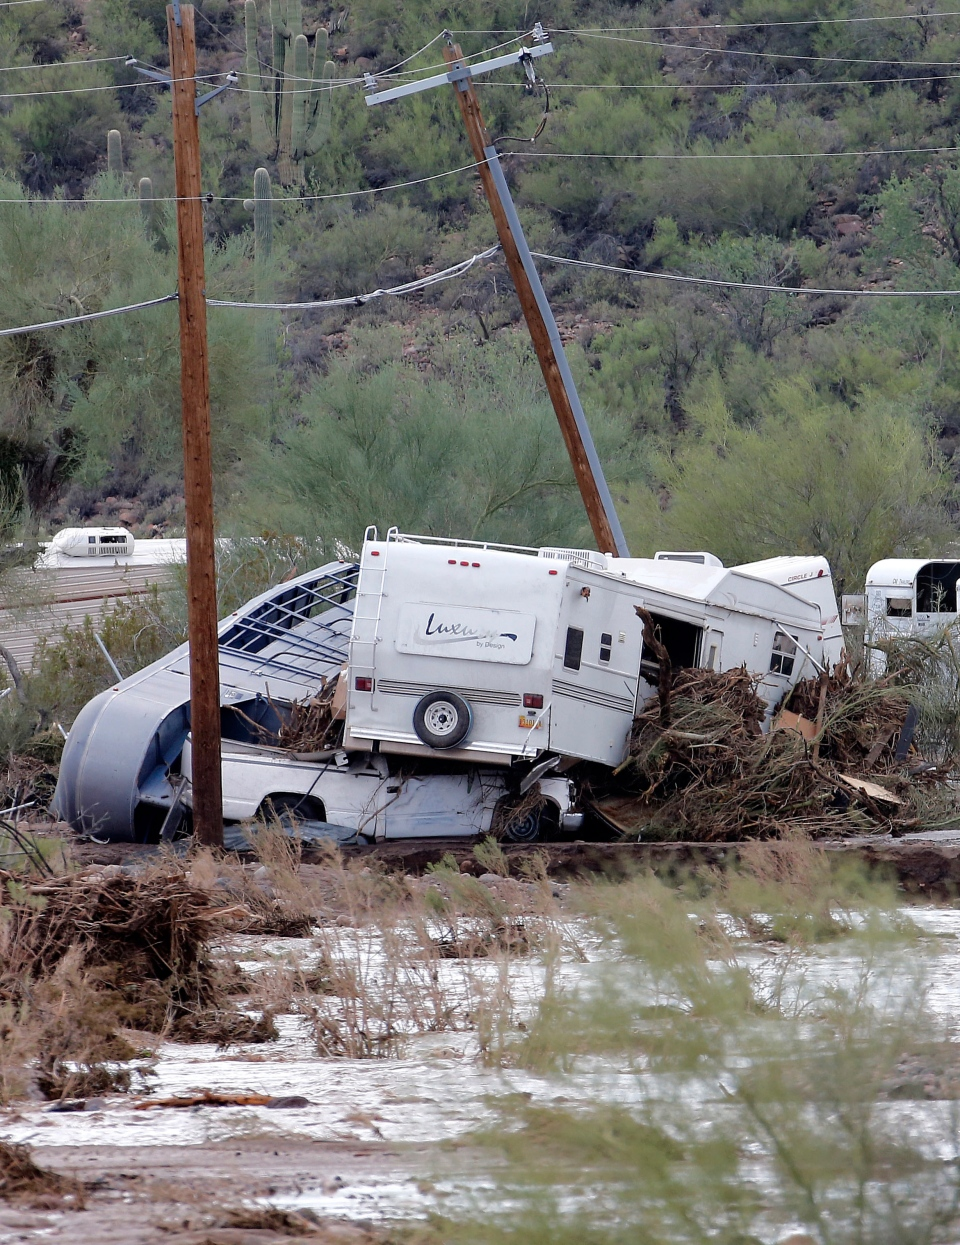 Damaged vehicles and trailers are seen in an area where flash flood waters that overran Skunk Creek, in New River, Ariz., just northwest of Phoenix, Tuesday, Aug. 19, 2014. (AP / Matt York)